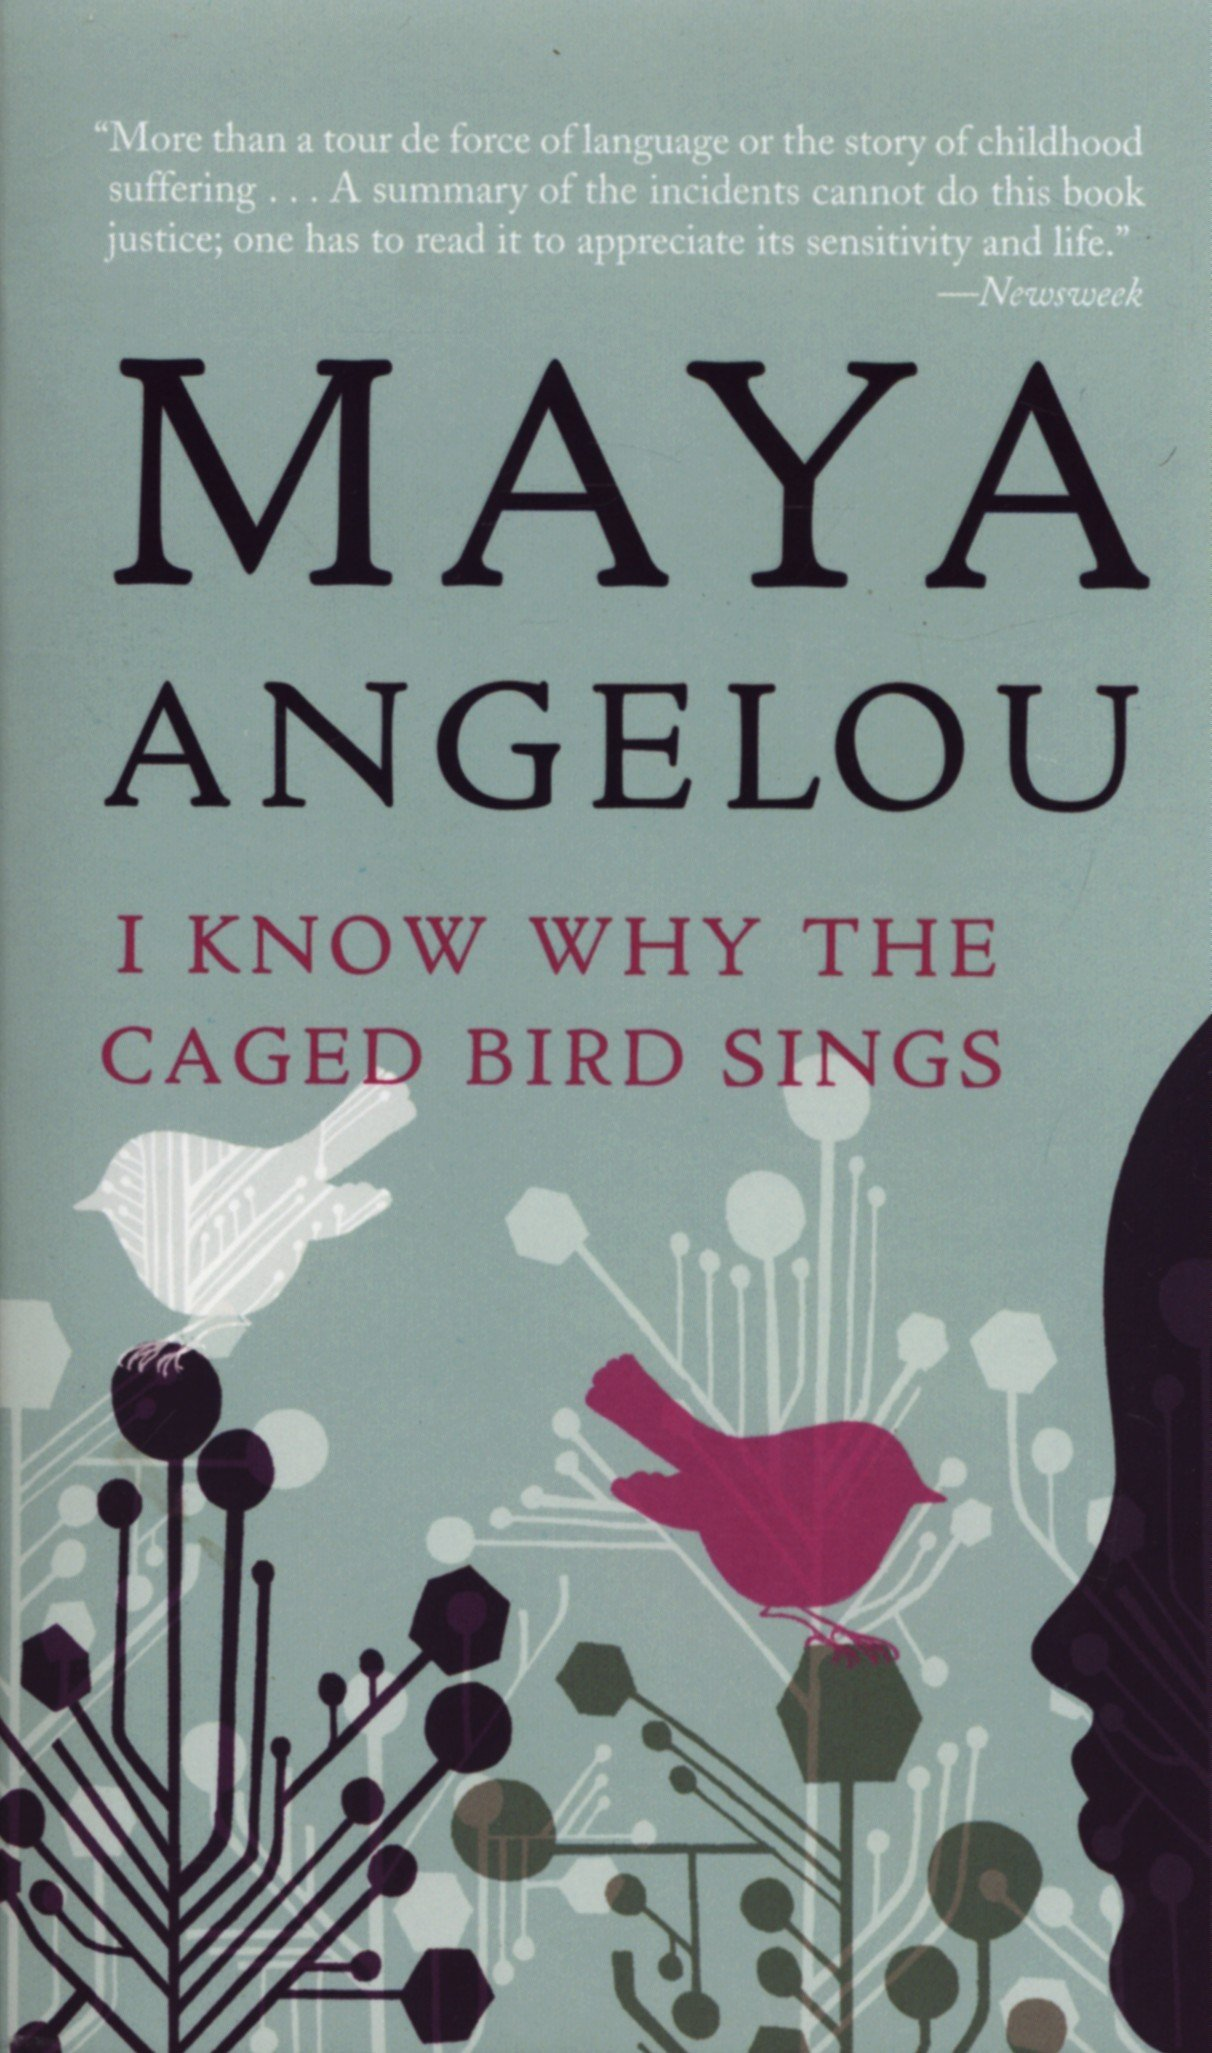 bird caged essay i know sings why Mya angelou's i know why the caged bird sings is a poem featured in her autobiography i know why the caged bird sings her book reflects the struggle she overcame as a young african american woman in the united states during, and before the civil rights movement.